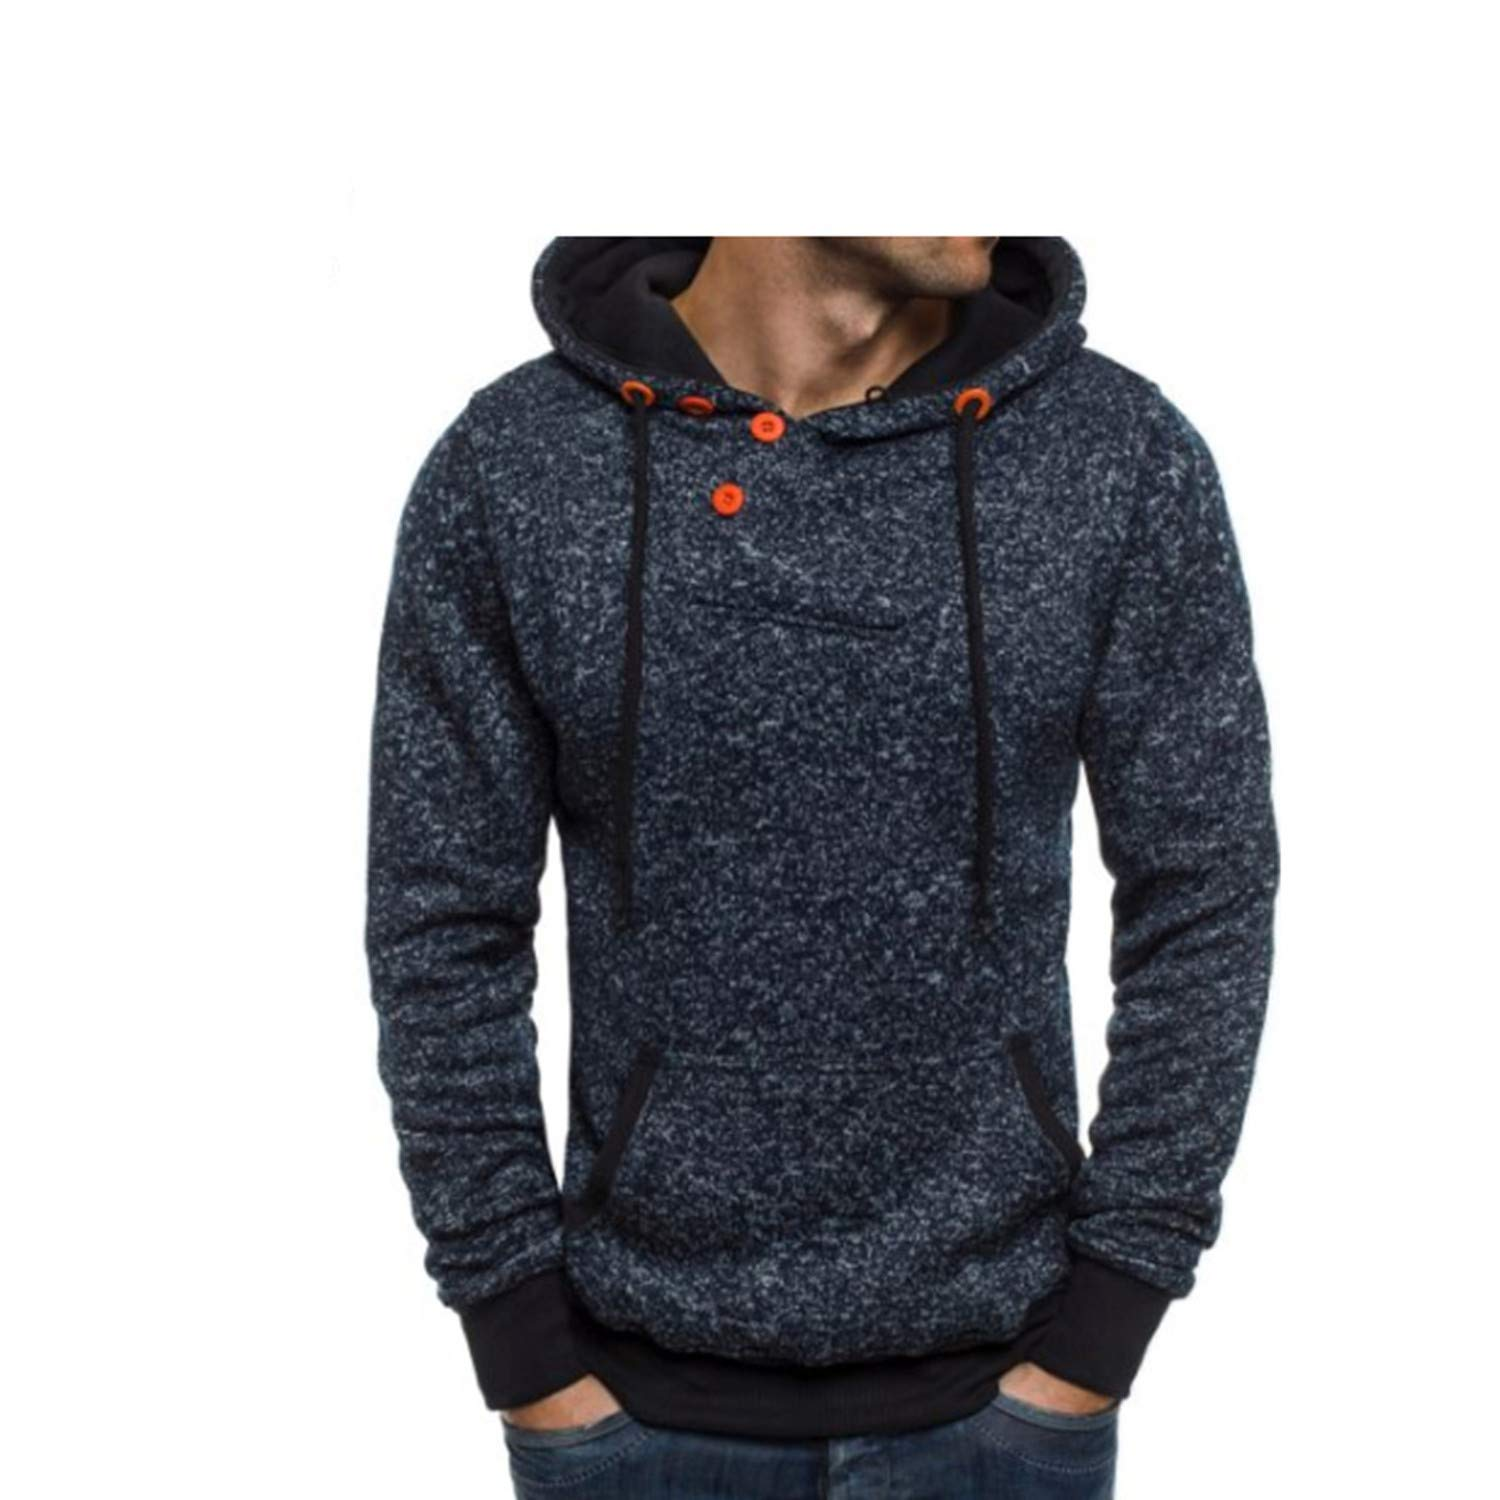 Kaured Fashion-hoodies Men Solid Color Flannel Hip Hop SweatMens Hoodies Cotton Pullover Male Hoody